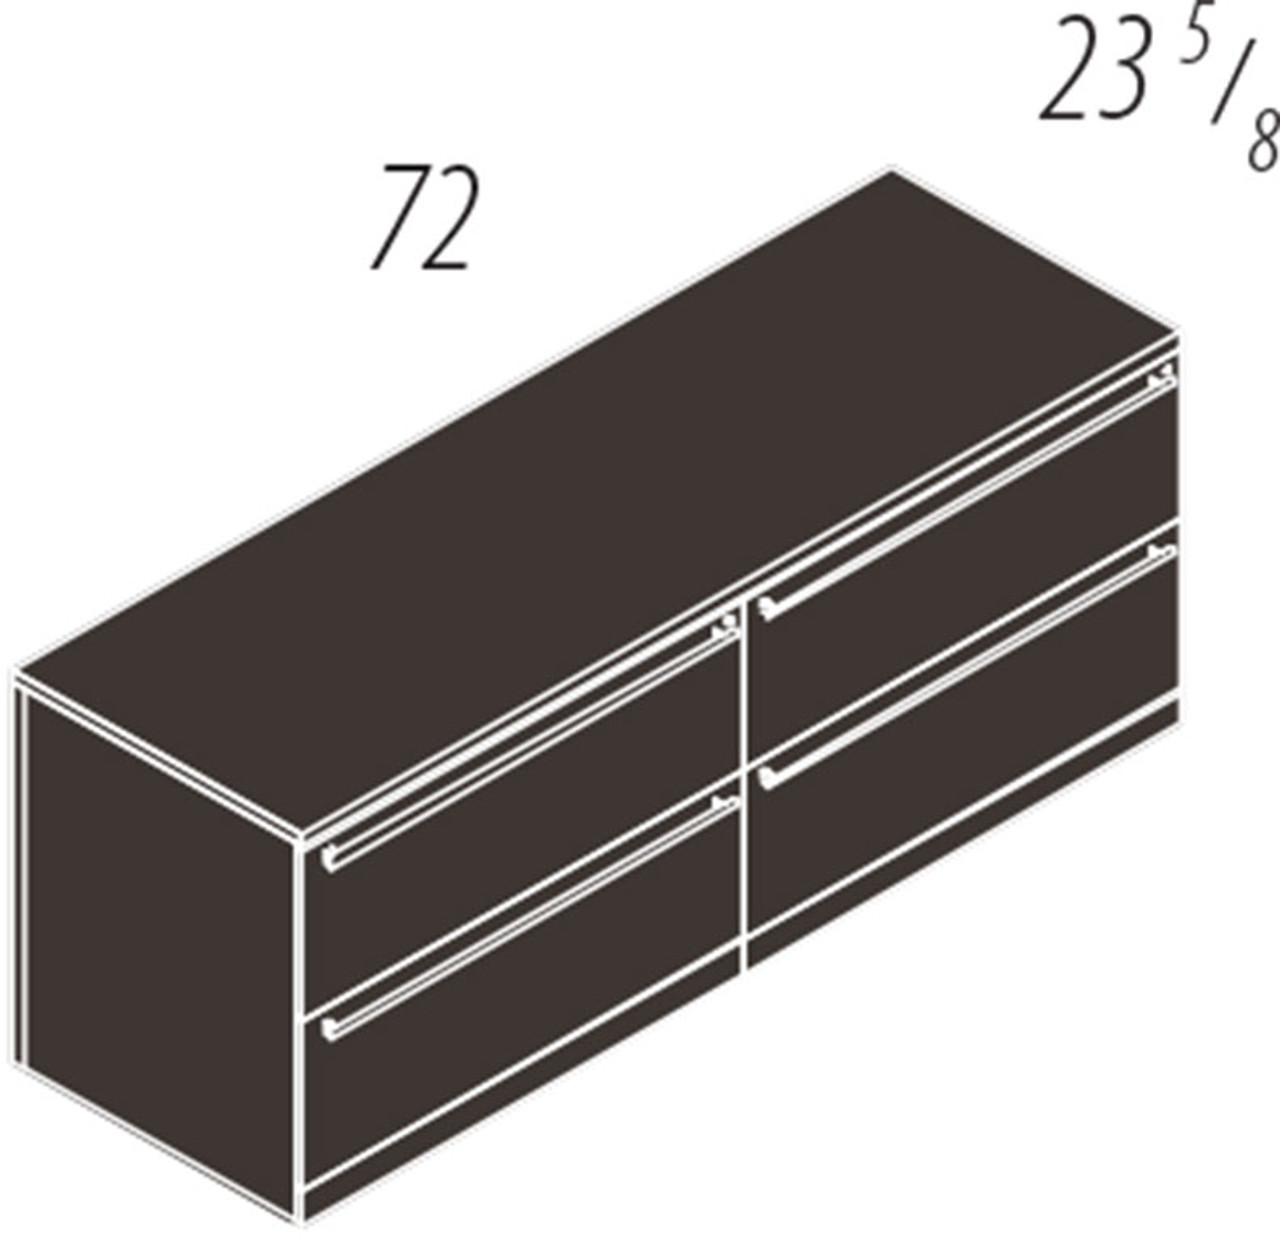 4 Drawers Lateral Low Wall Cabinet, #CH-VER-CAB14